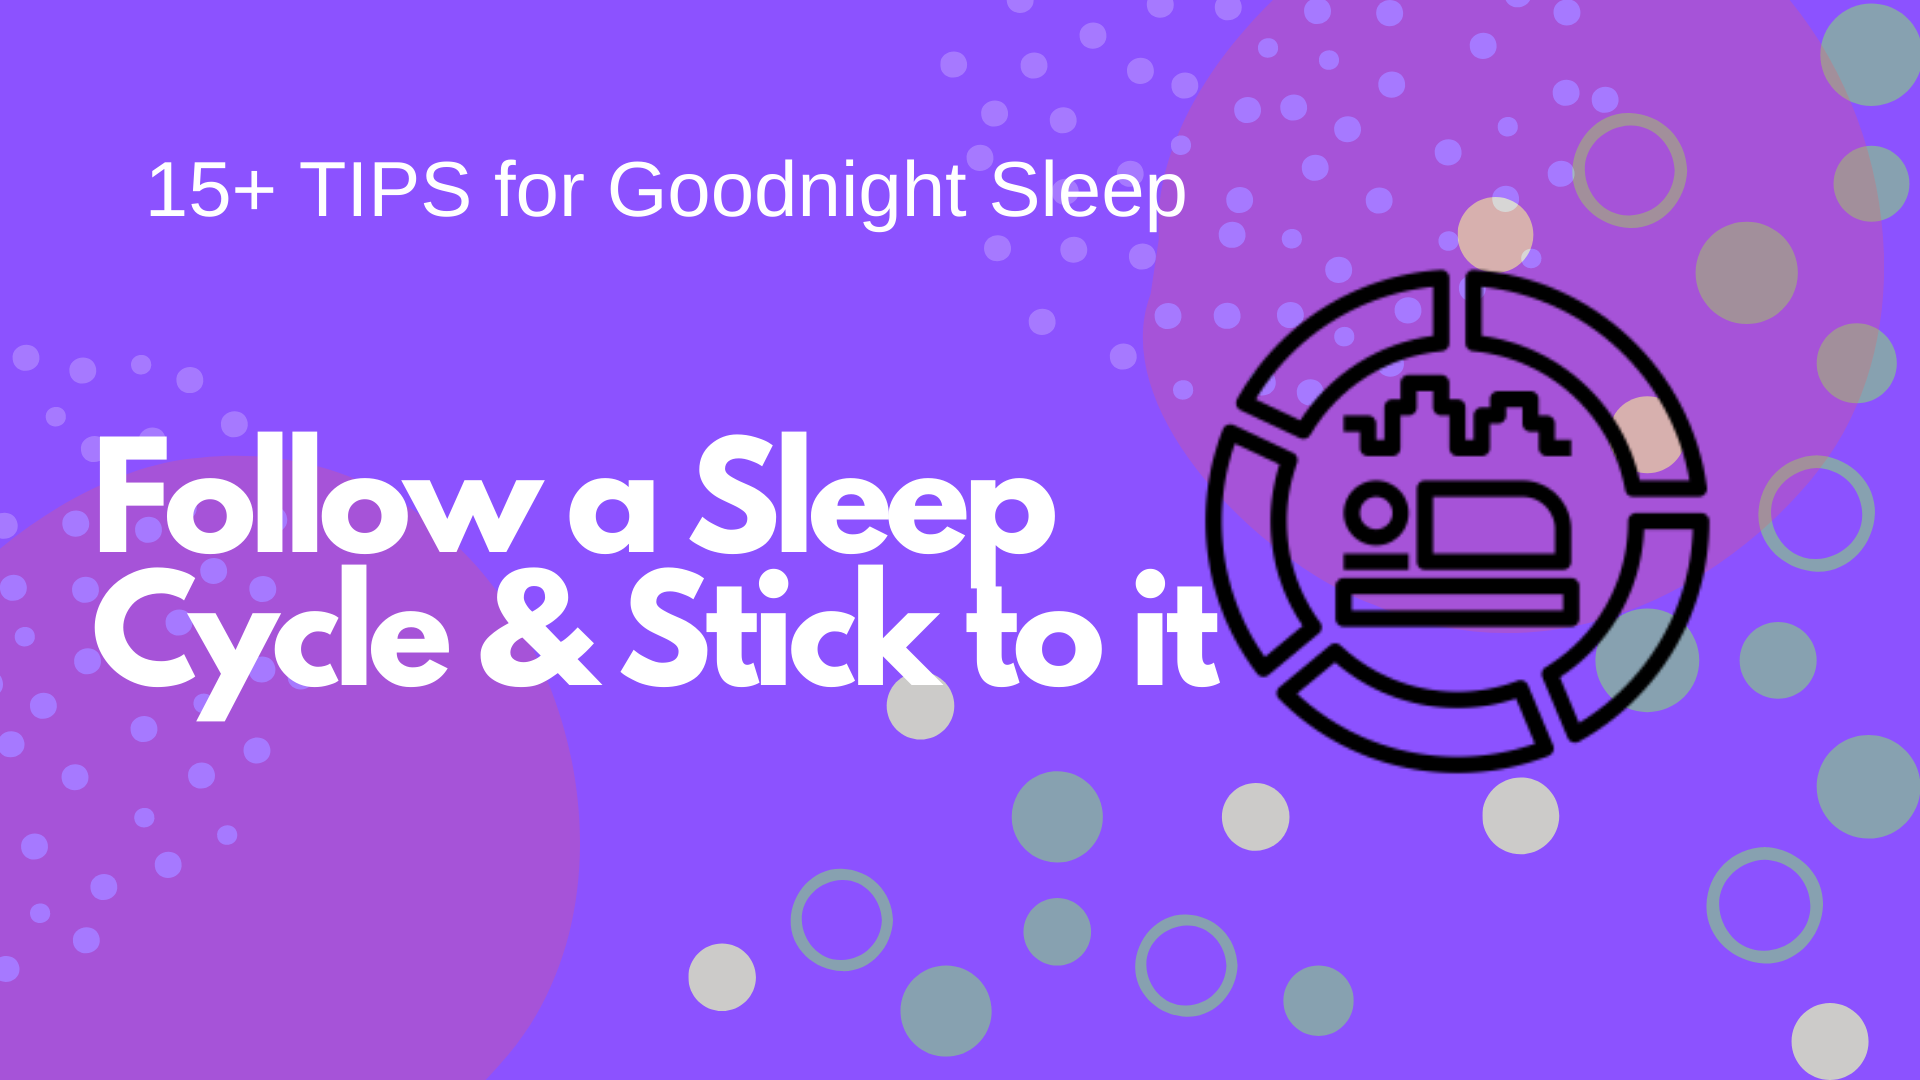 Follow a Sleep Cycle & Stick to it